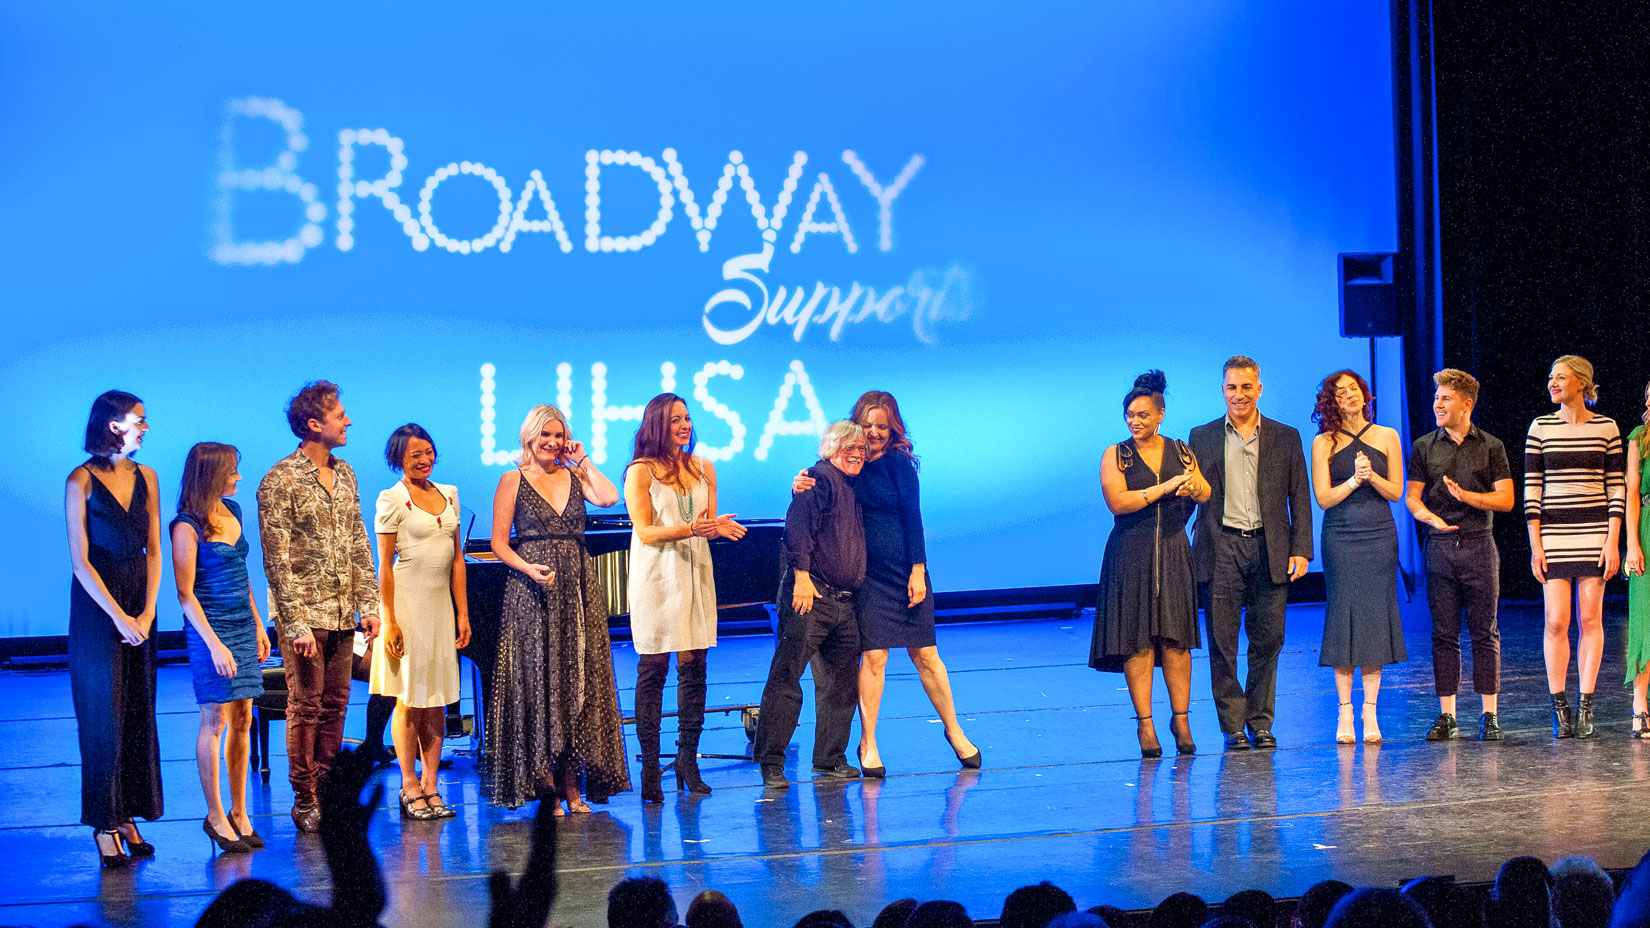 Broadway Supports LIHSA ceremony on stage